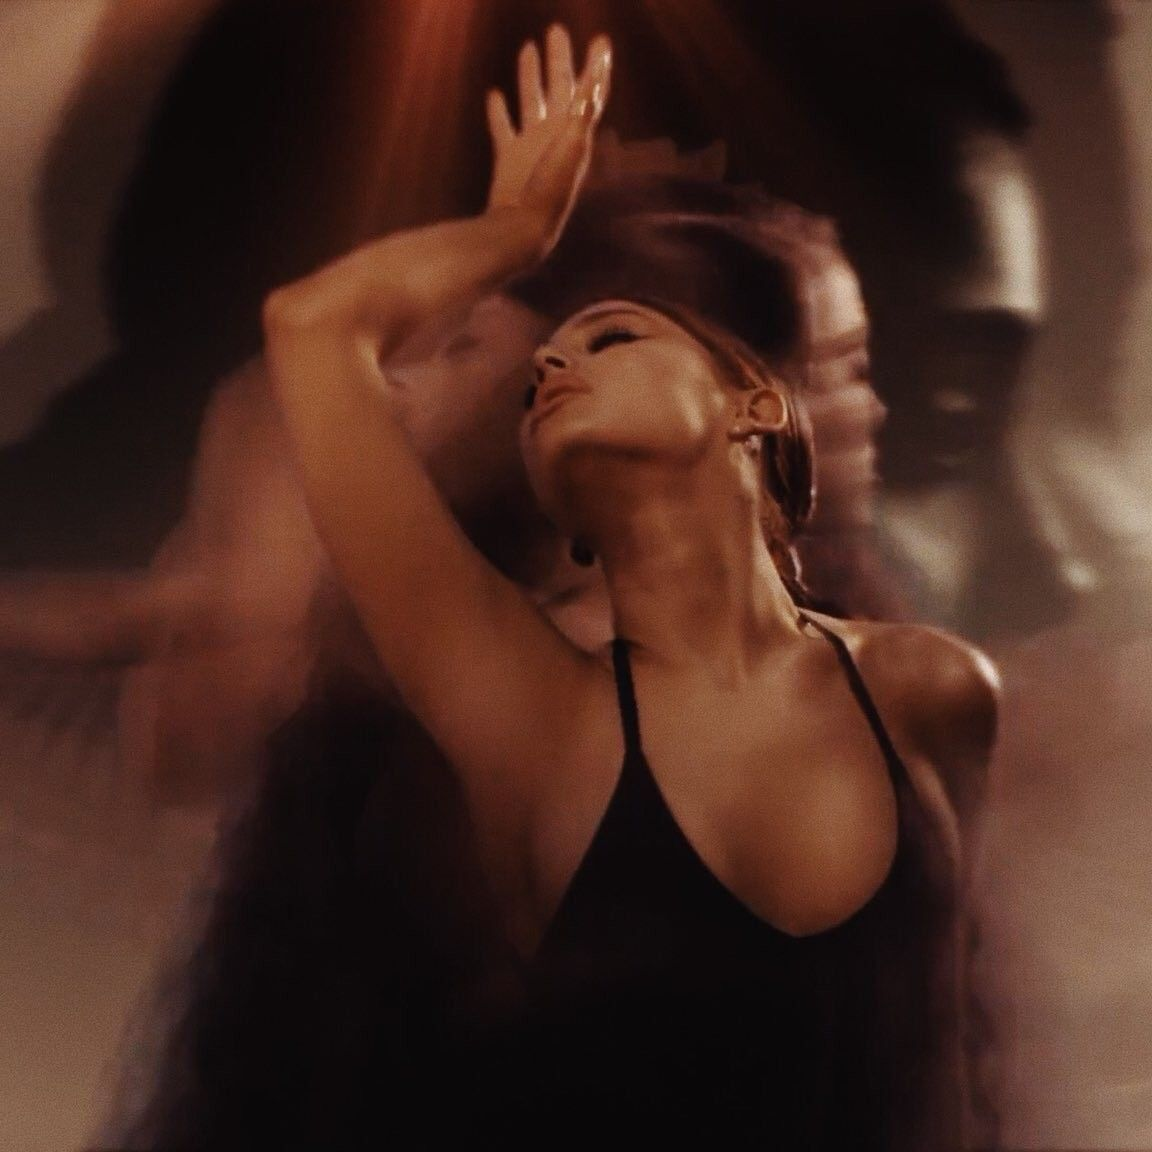 God Is A Woman By Ariana Grande Giaw Music Video Ariana Grande